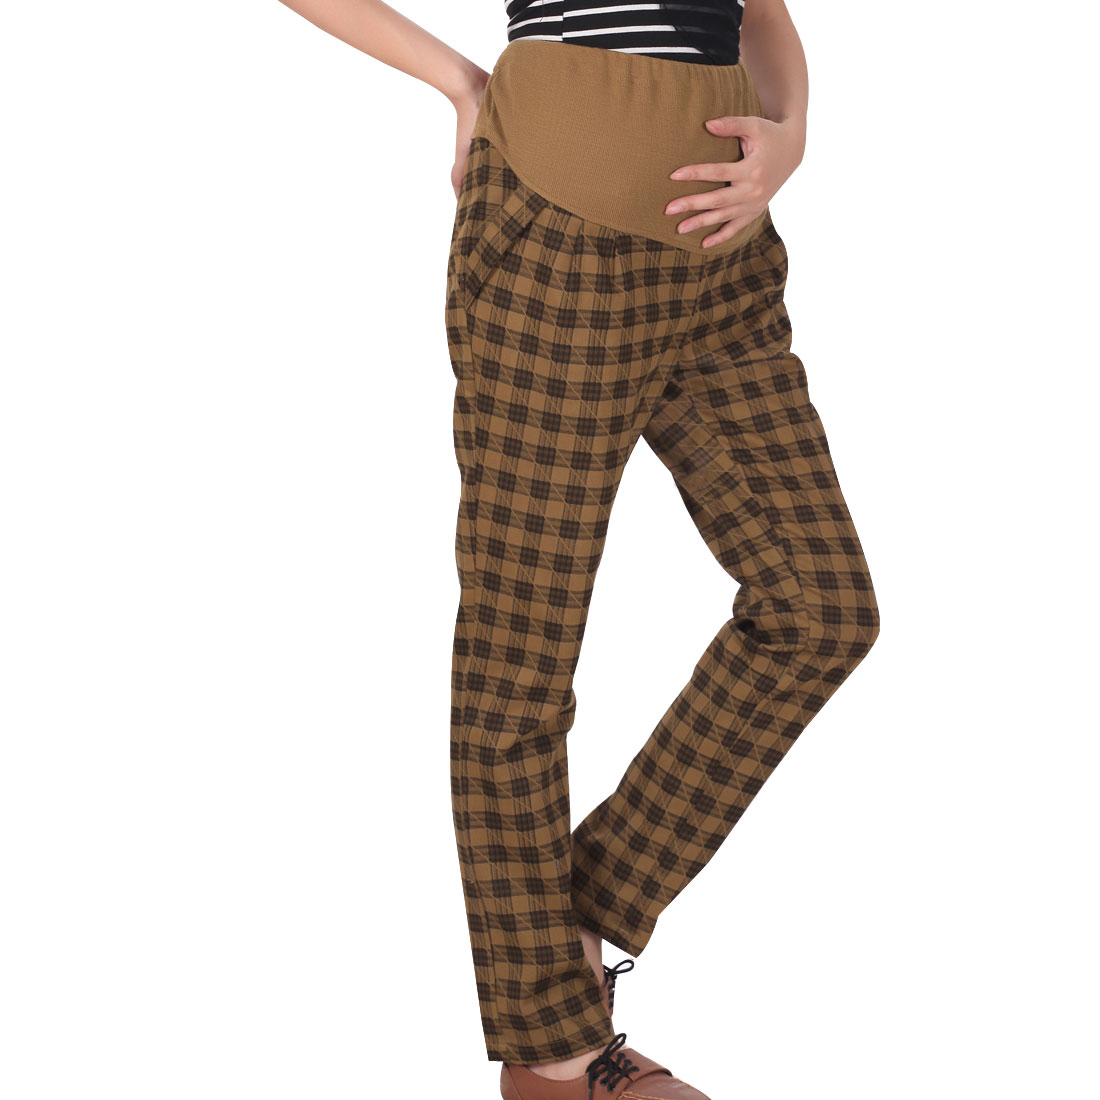 Maternity Camel Color Stretch Plaids Adjustable Waistband Skinny Pants L